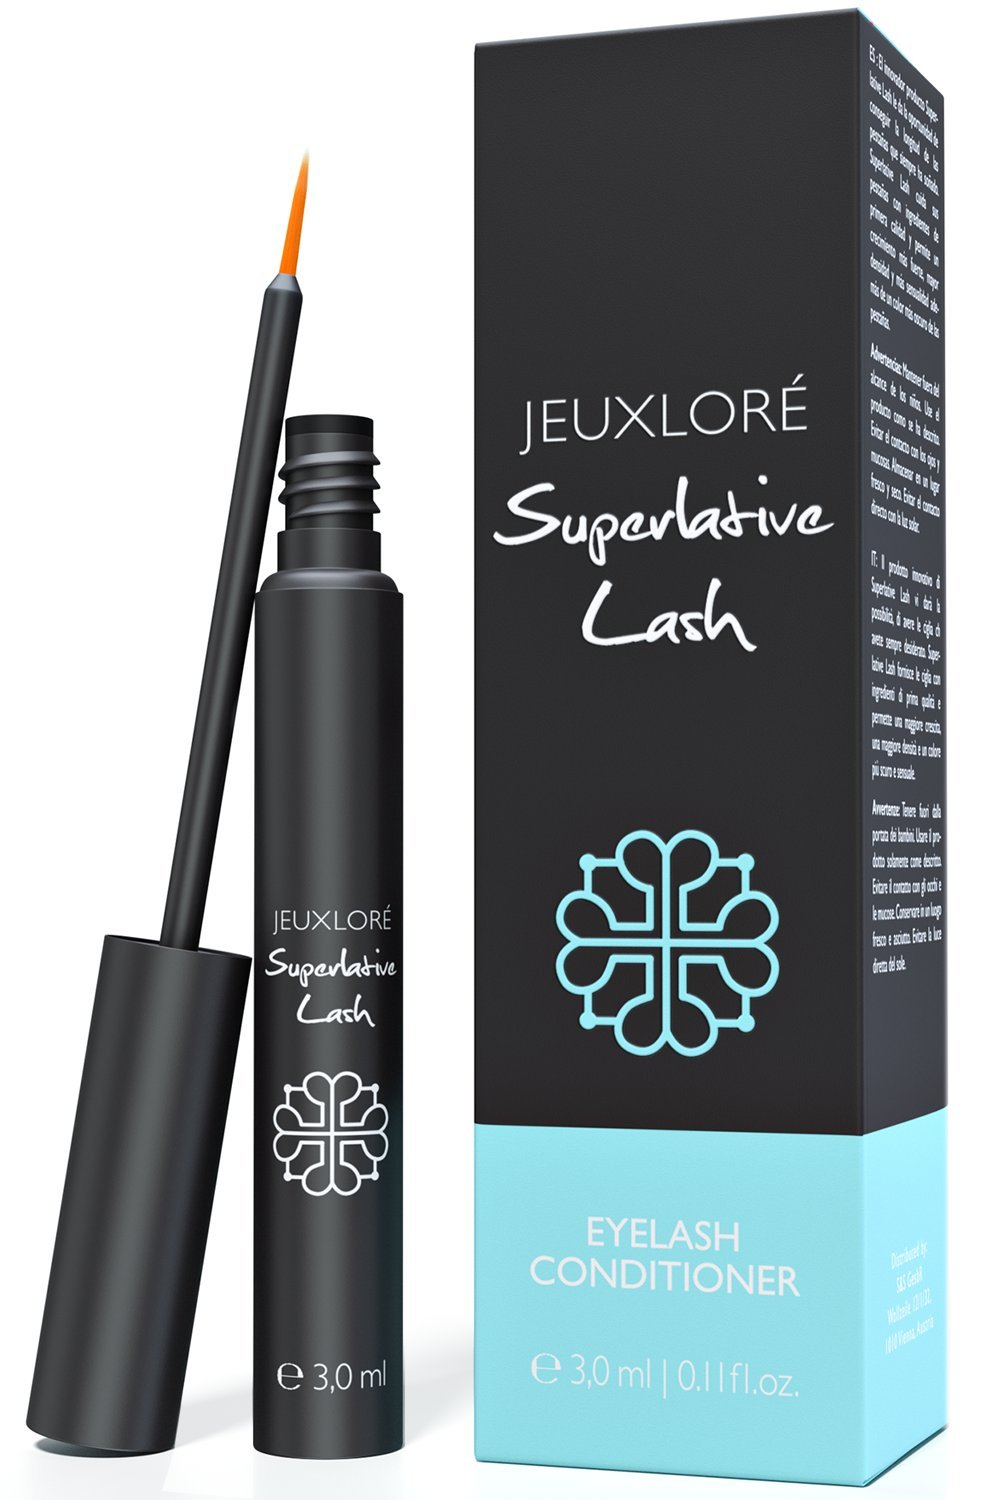 LORE® - Eyelash Growth Serum 3 ml - Thicker, Longer Eyelashes & Eyebrows - No Irritation, Dermatologist Tested! SnS Corp. G1